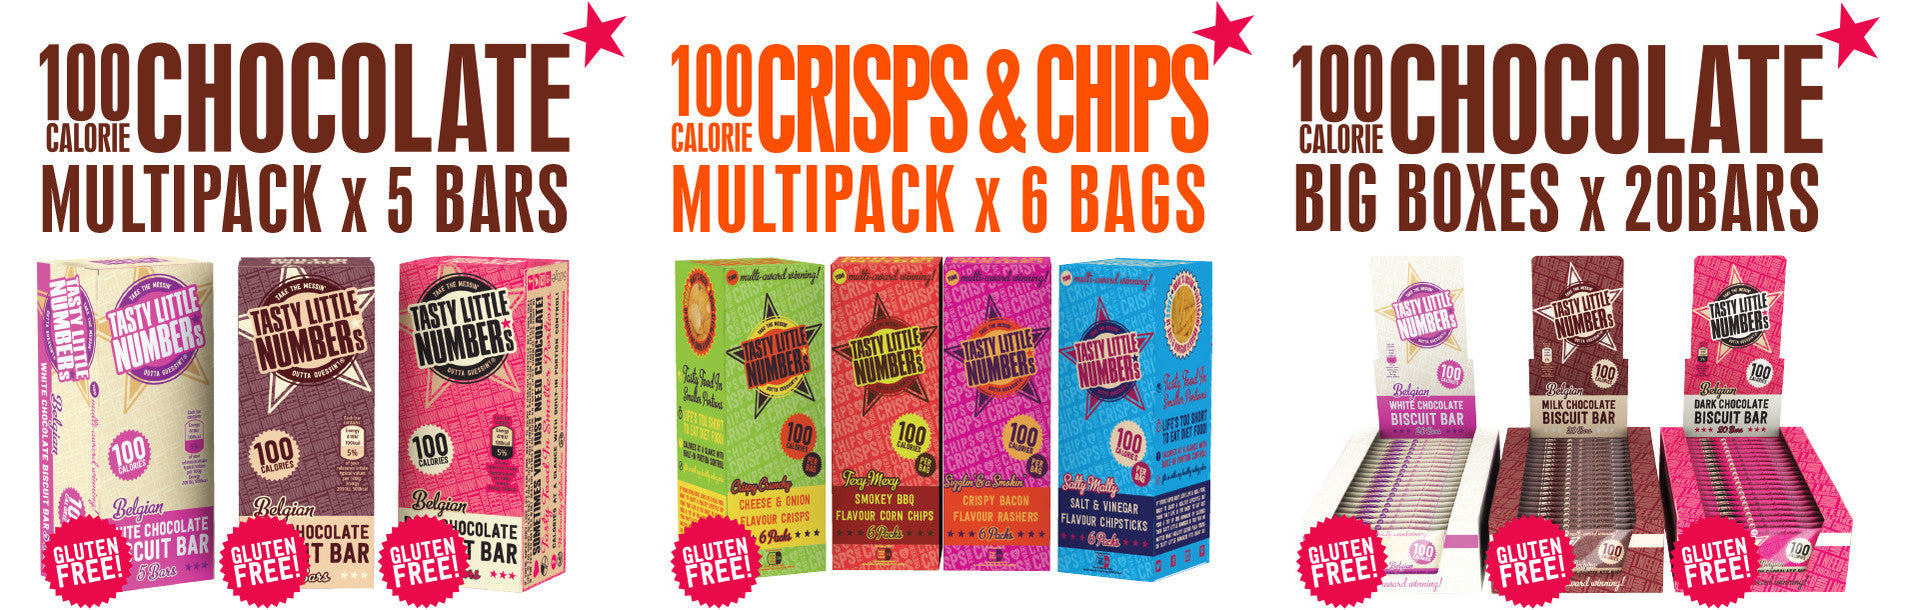 100 AND 200 CALORIE MULTI-PACKS! BIG BOXES TO STOCK UP ON!